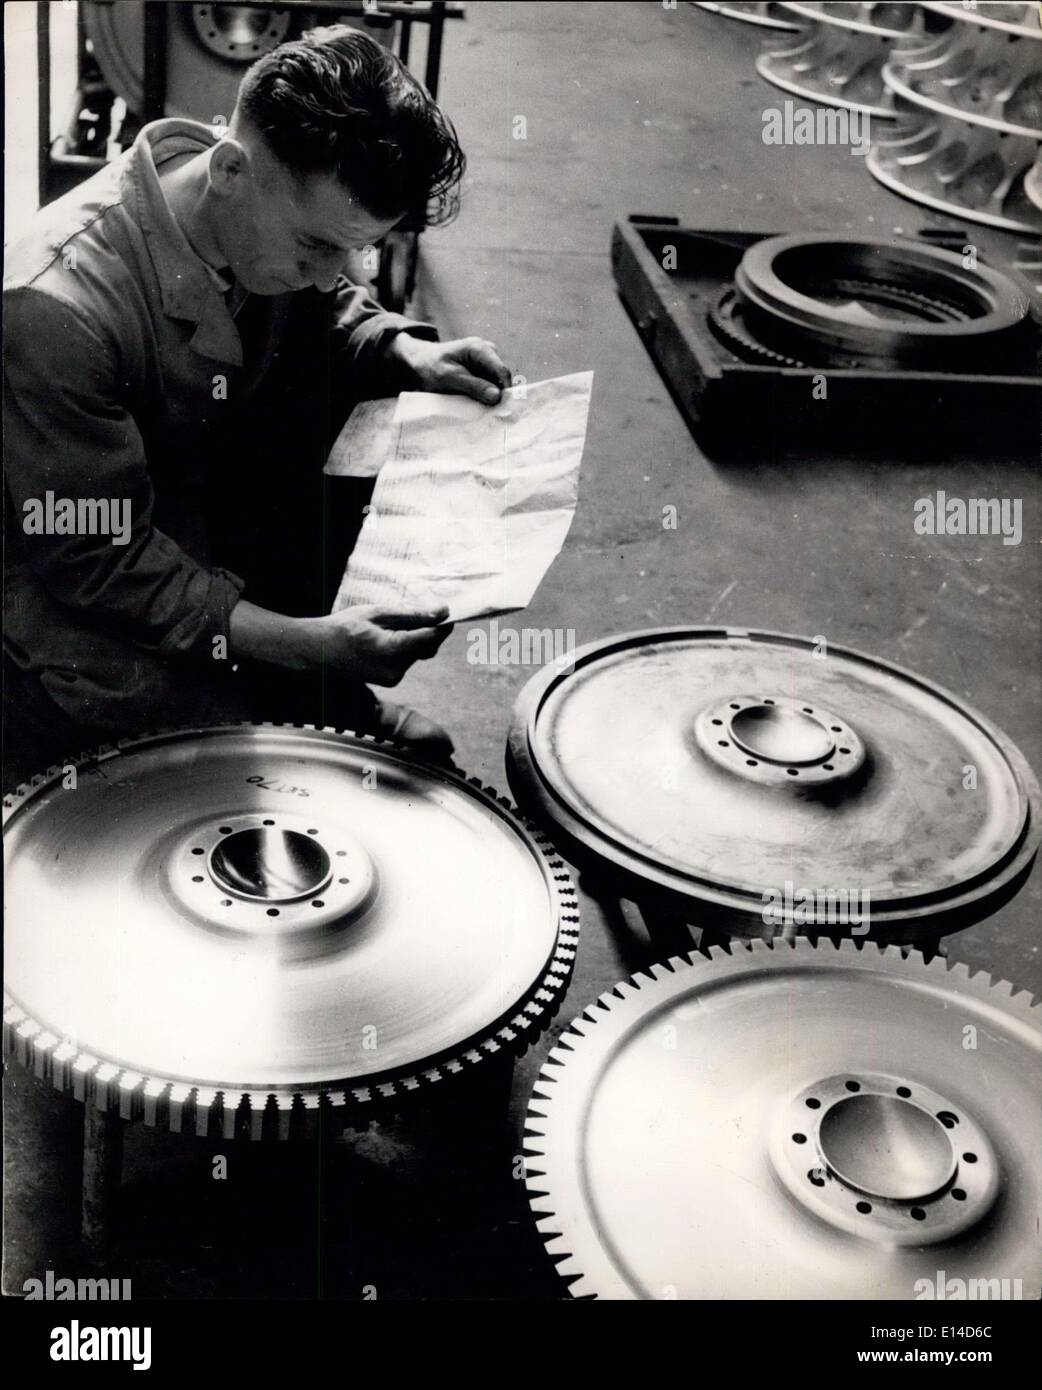 Apr. 17, 2012 - Jet Engine Manu the carbine discs : The Serial-numbers have to be checked carefully before assembly. - Stock Image